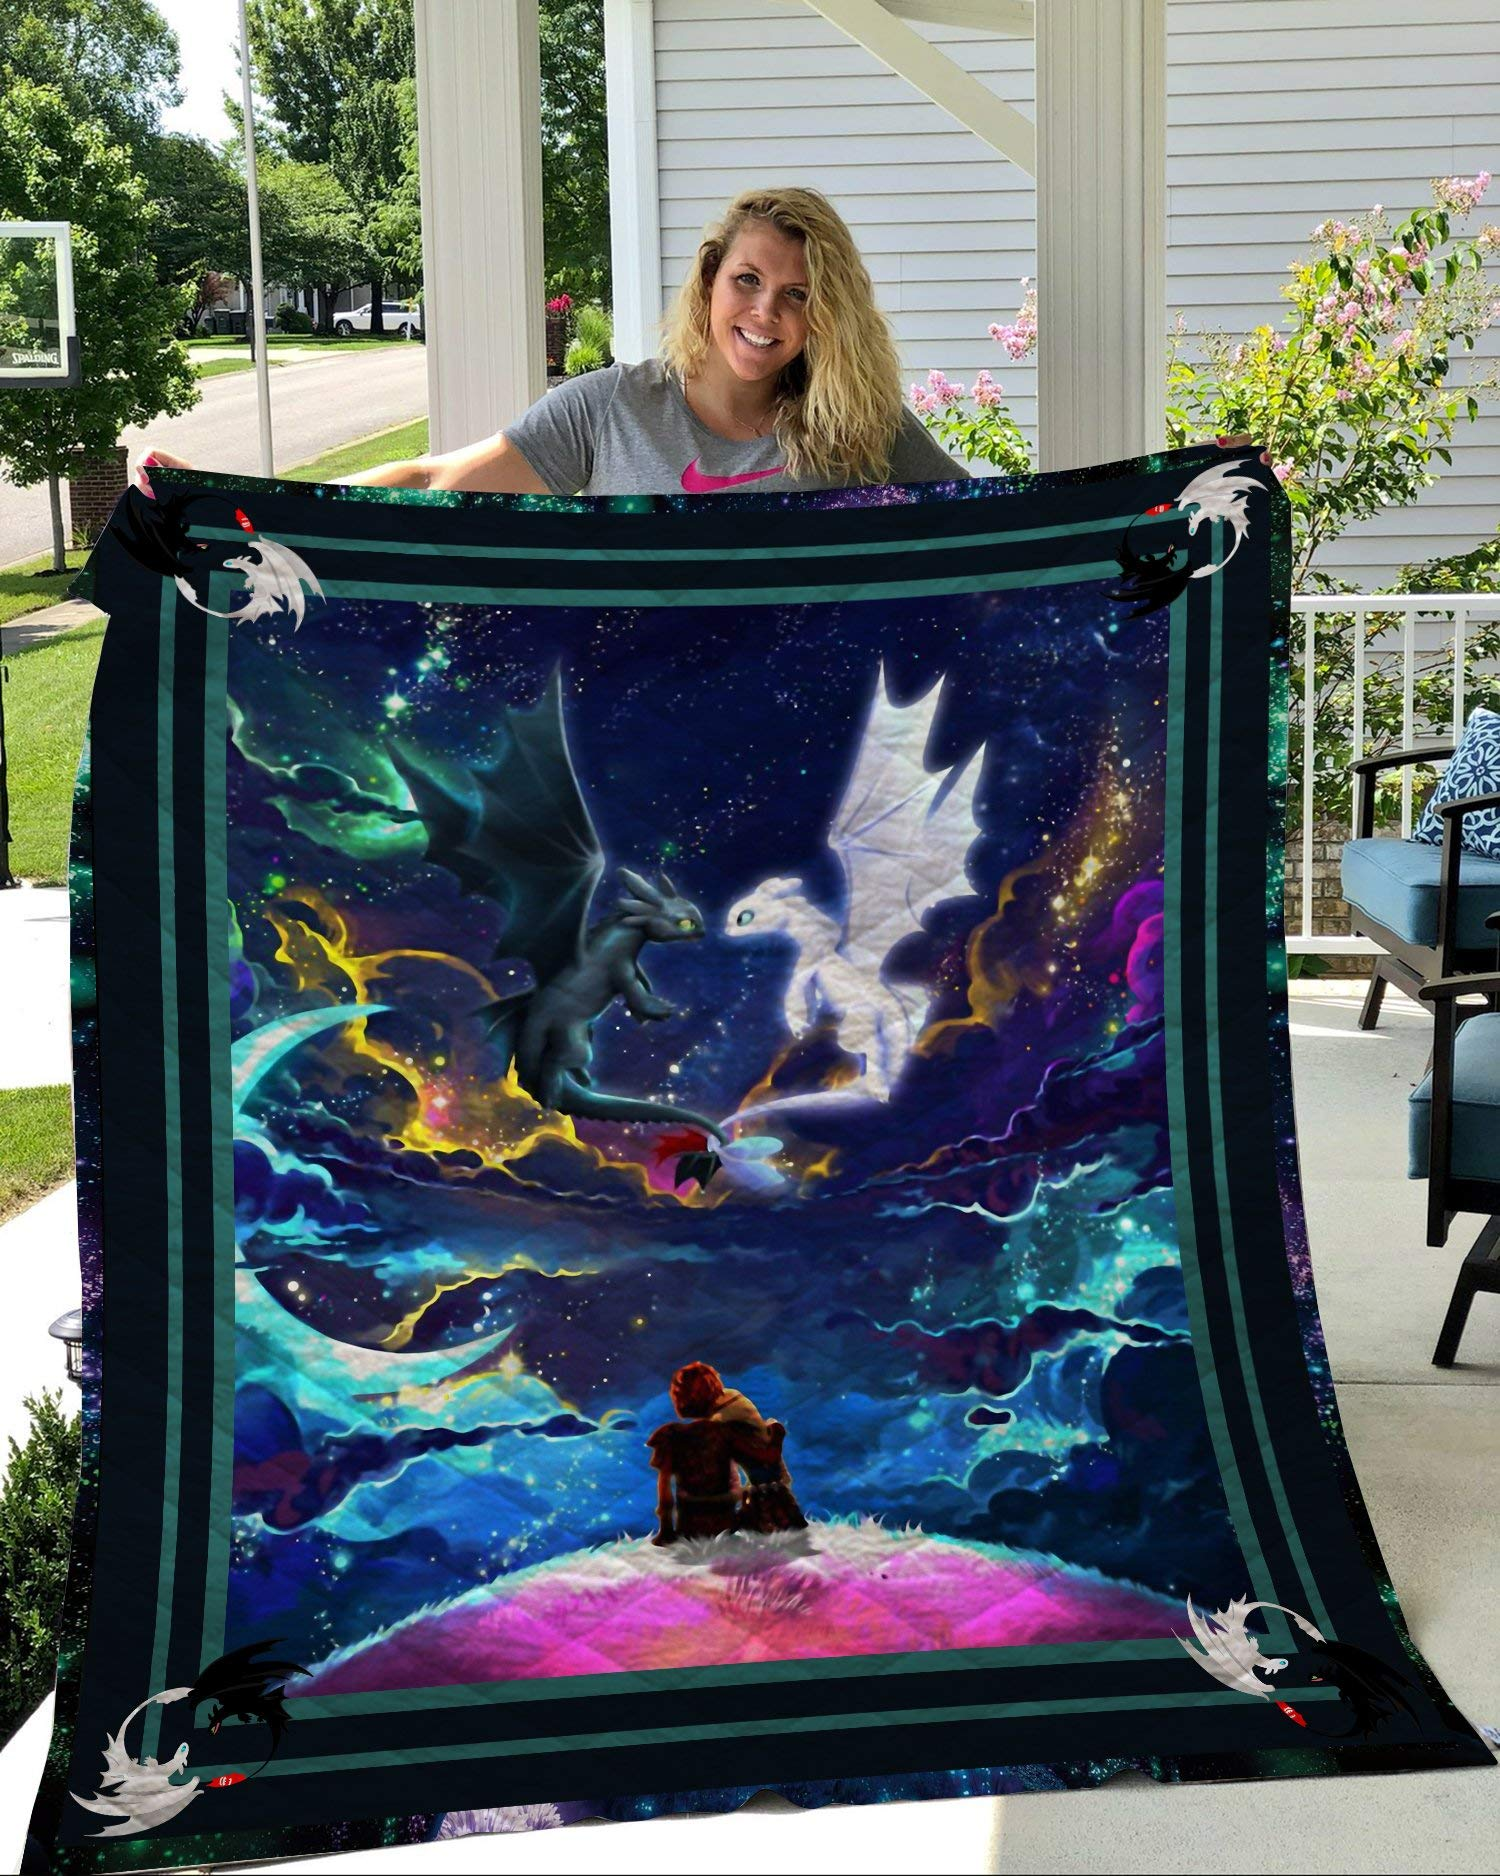 Kids How to Train Your Dragon Theme Quilt Blanket for Kids Bedding Throw Soft Warm Thin Blanket with Cotton Quilt (1,150200CM) by OWHO